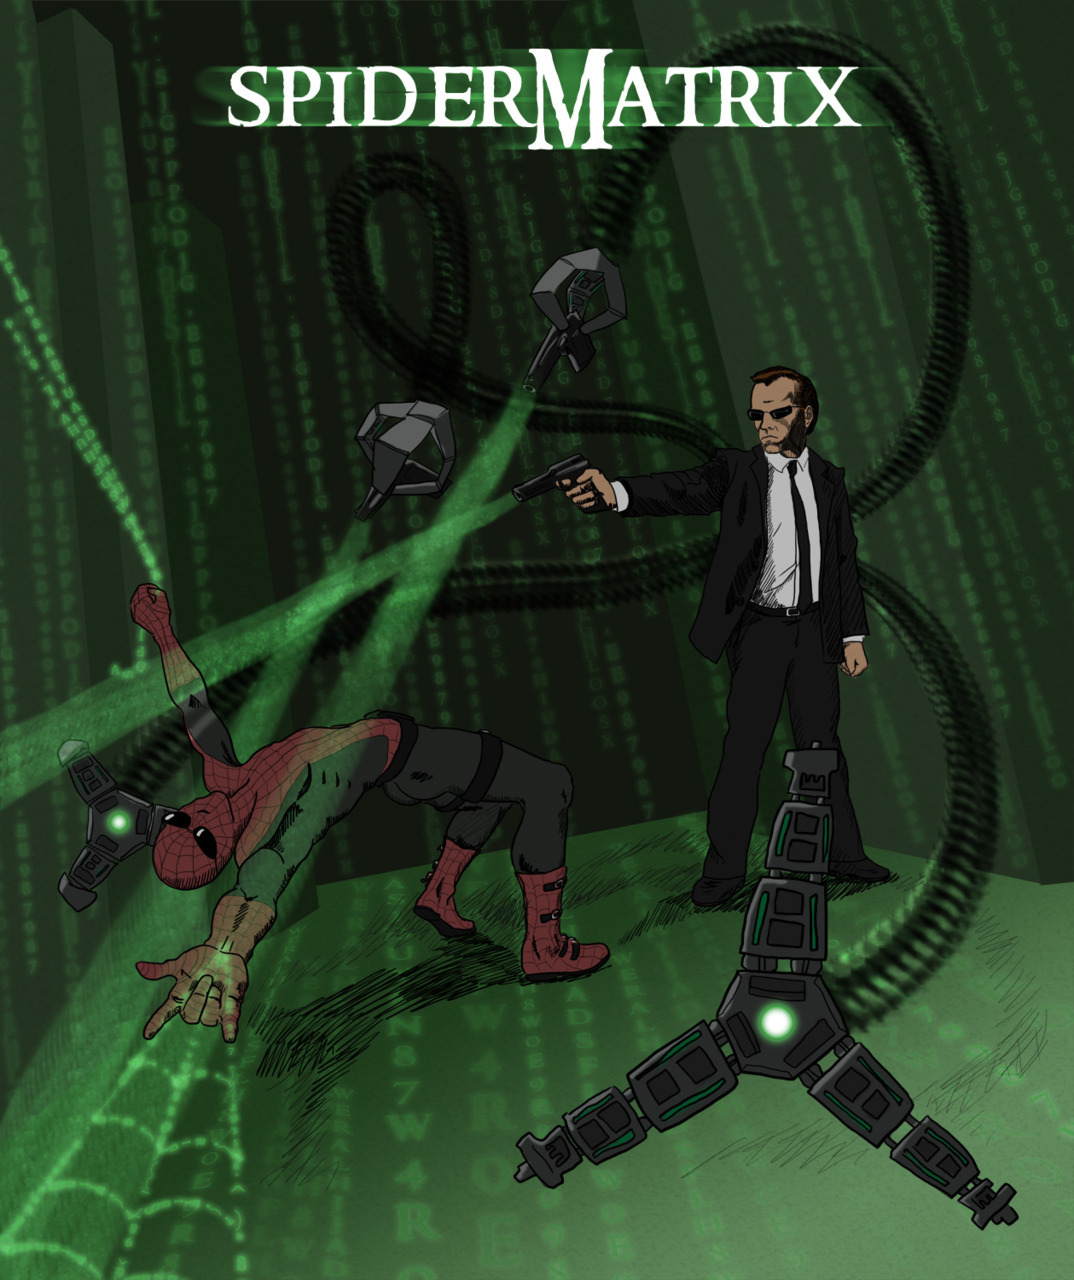 SpiderMatrix - Spideo and Agent Ock battle in bullet time Spider-man / Post Apocalyptic mash-up created by Alex Ryan for www.draw2d2.com